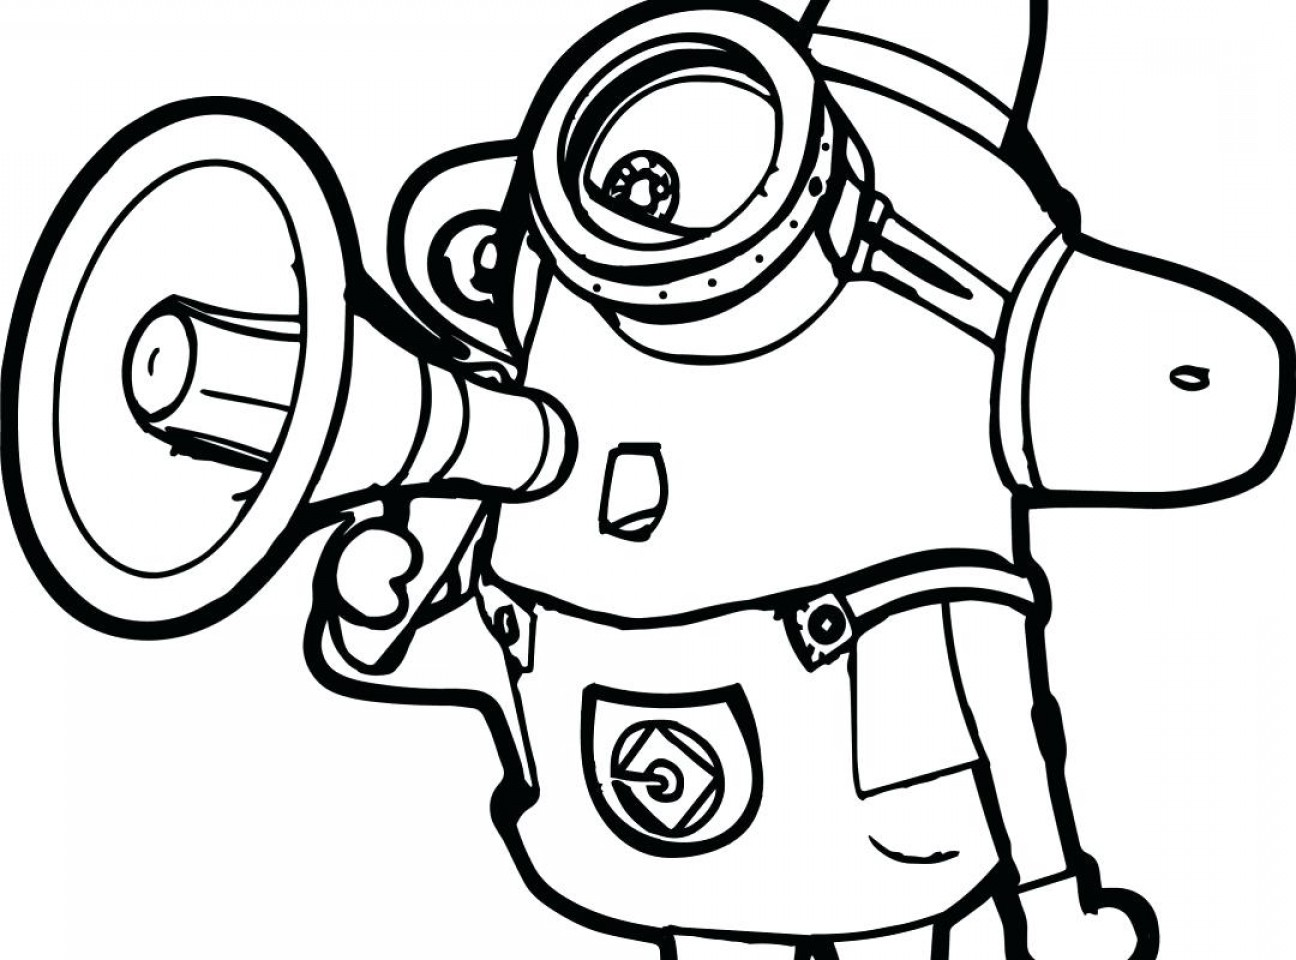 1296x960 Minions Vector Black And White Lazttweet